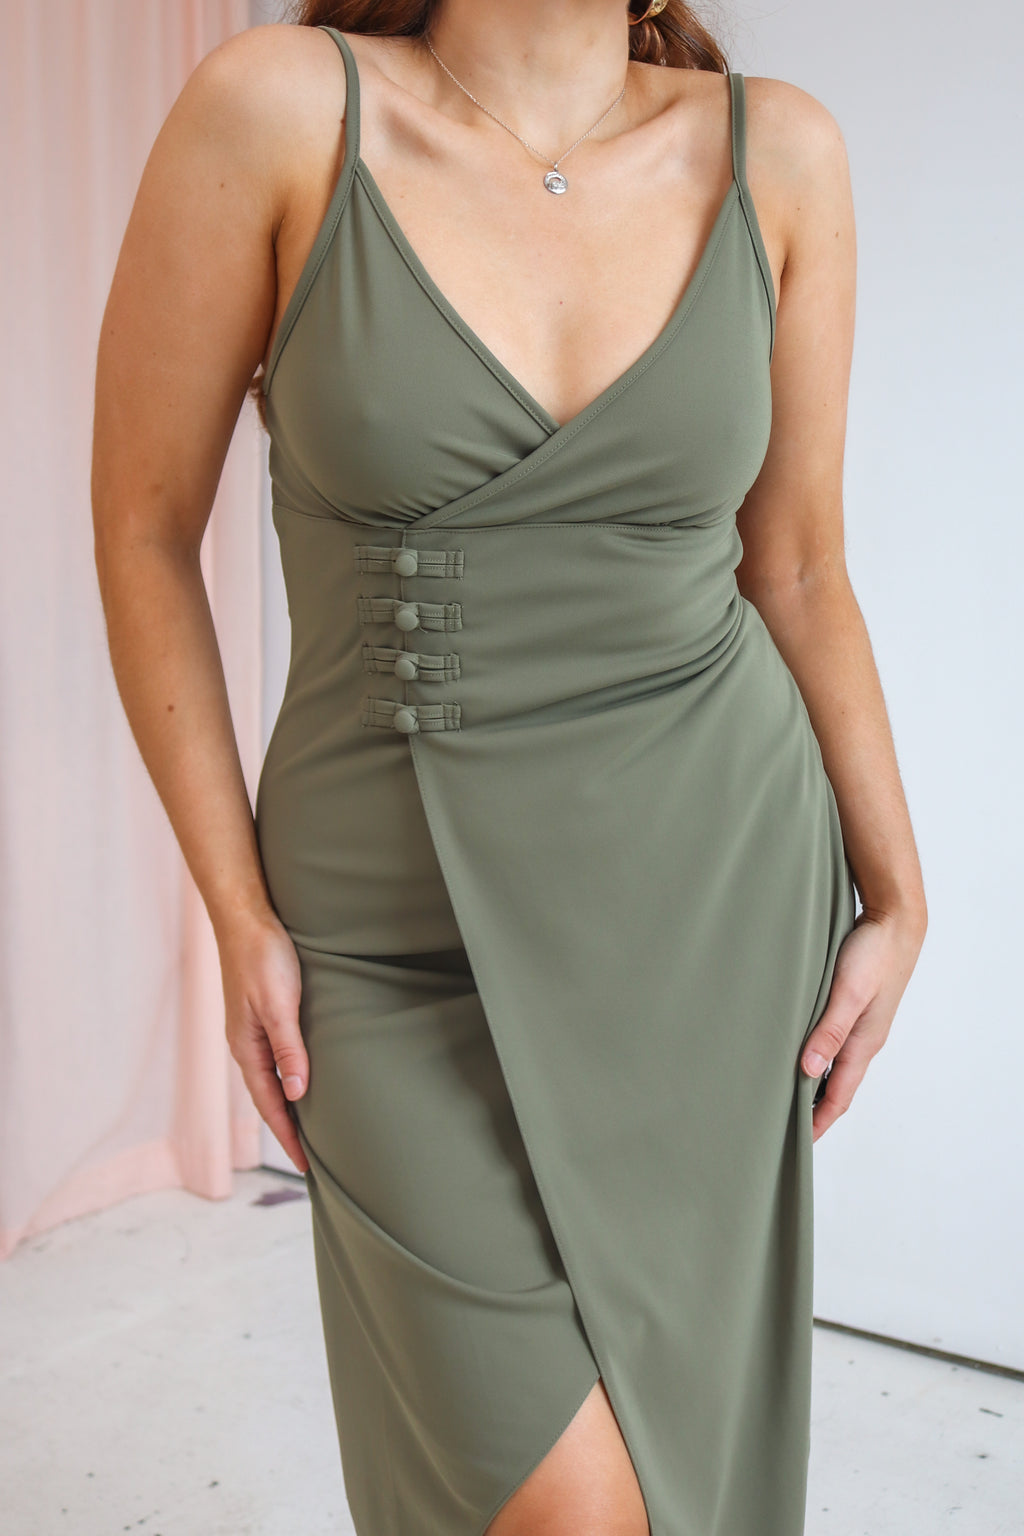 VintageMidi Wrap Dress in Khaki Green - Dirty Disco